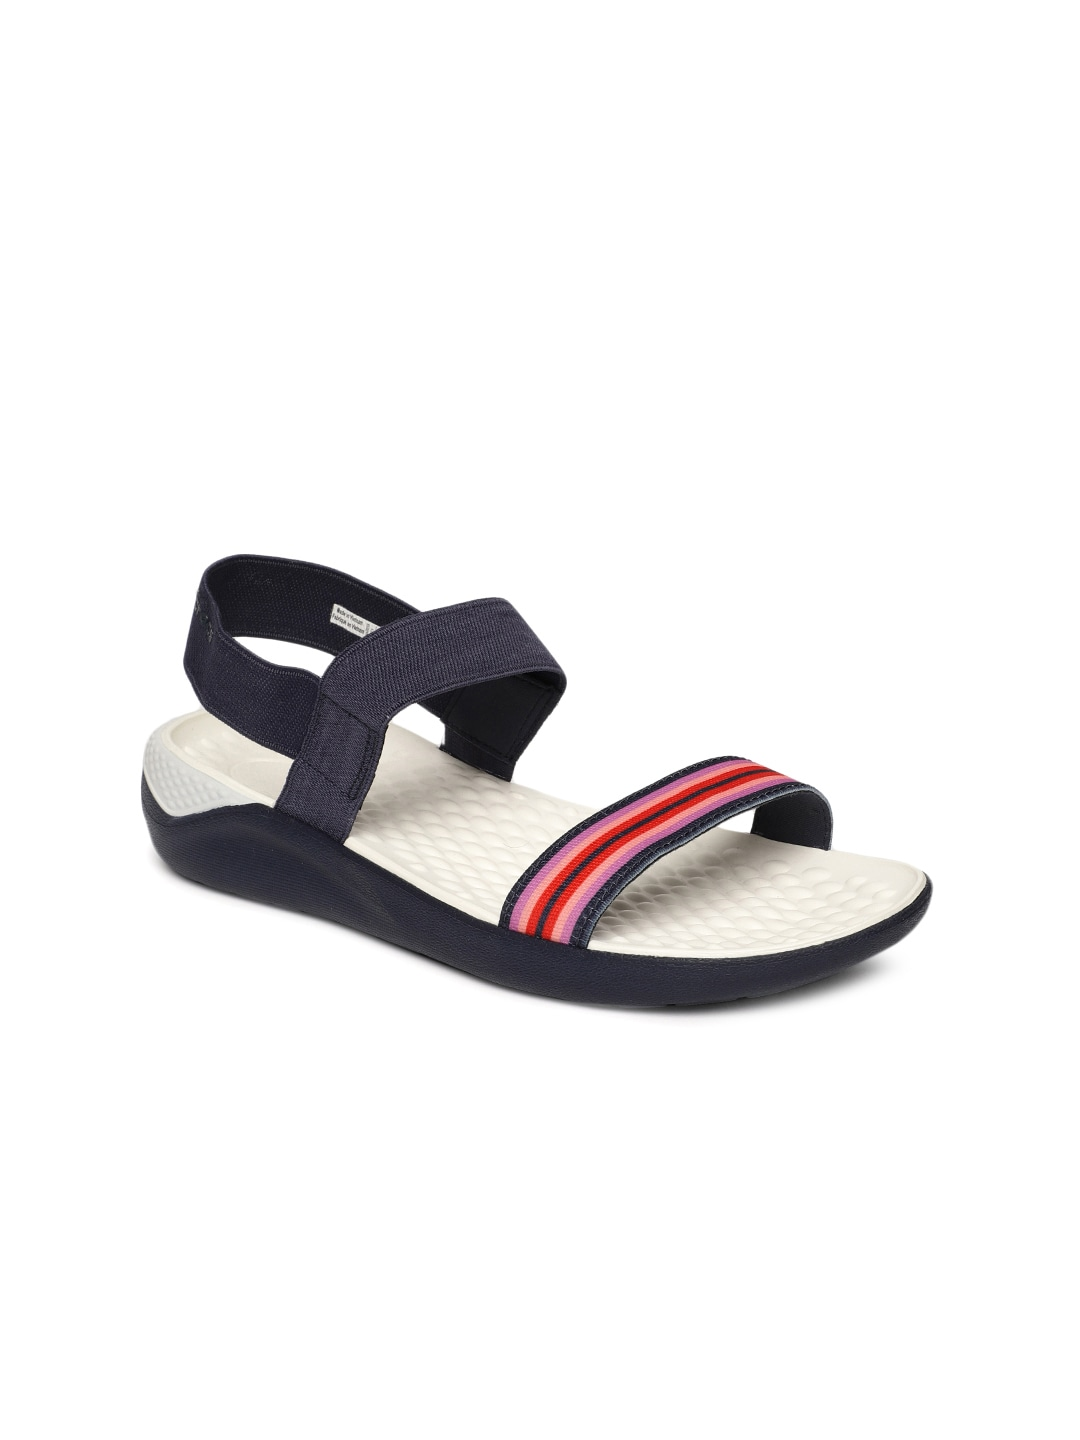 8fc144b501fc Ladies Sandals - Buy Women Sandals Online in India - Myntra